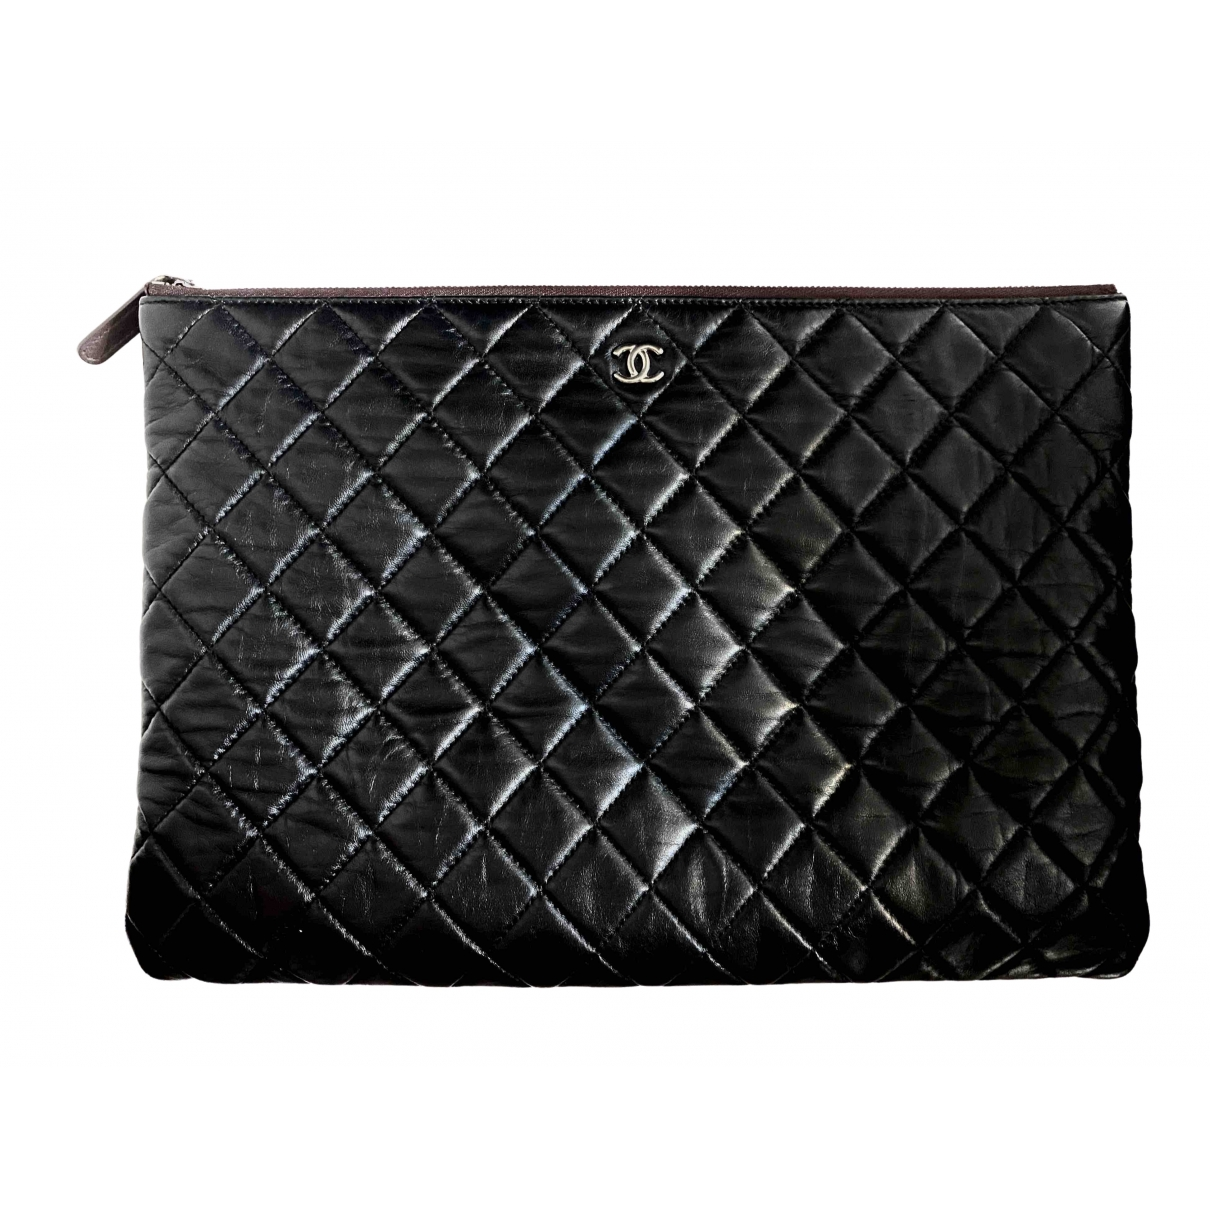 Chanel Timeless/Classique Black Leather Clutch bag for Women N